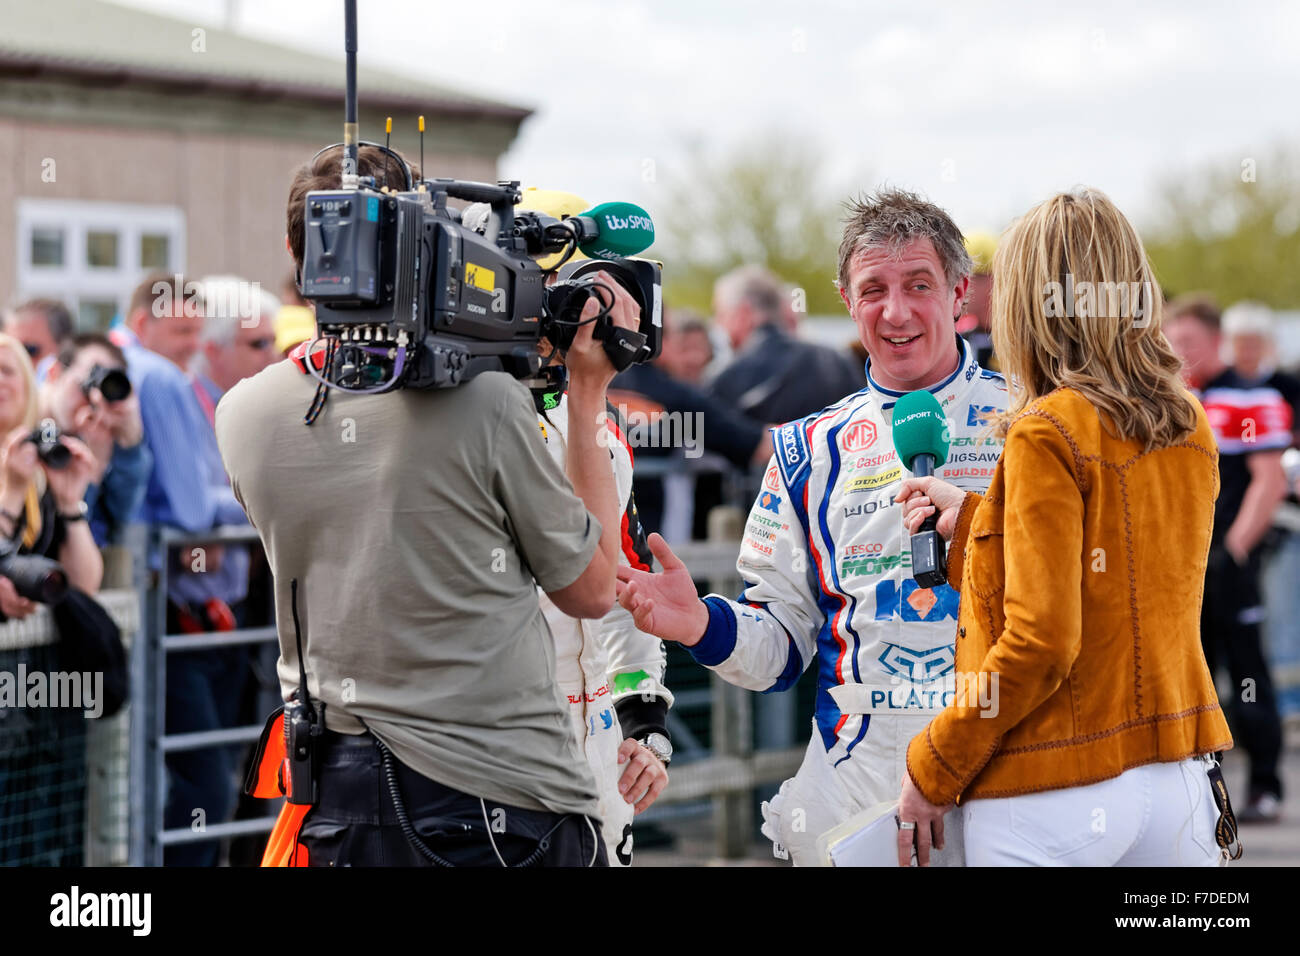 British Touring car racing driver Jason Plato being  interviewed at Thruxton race circuit by itv sports commentator - Stock Image